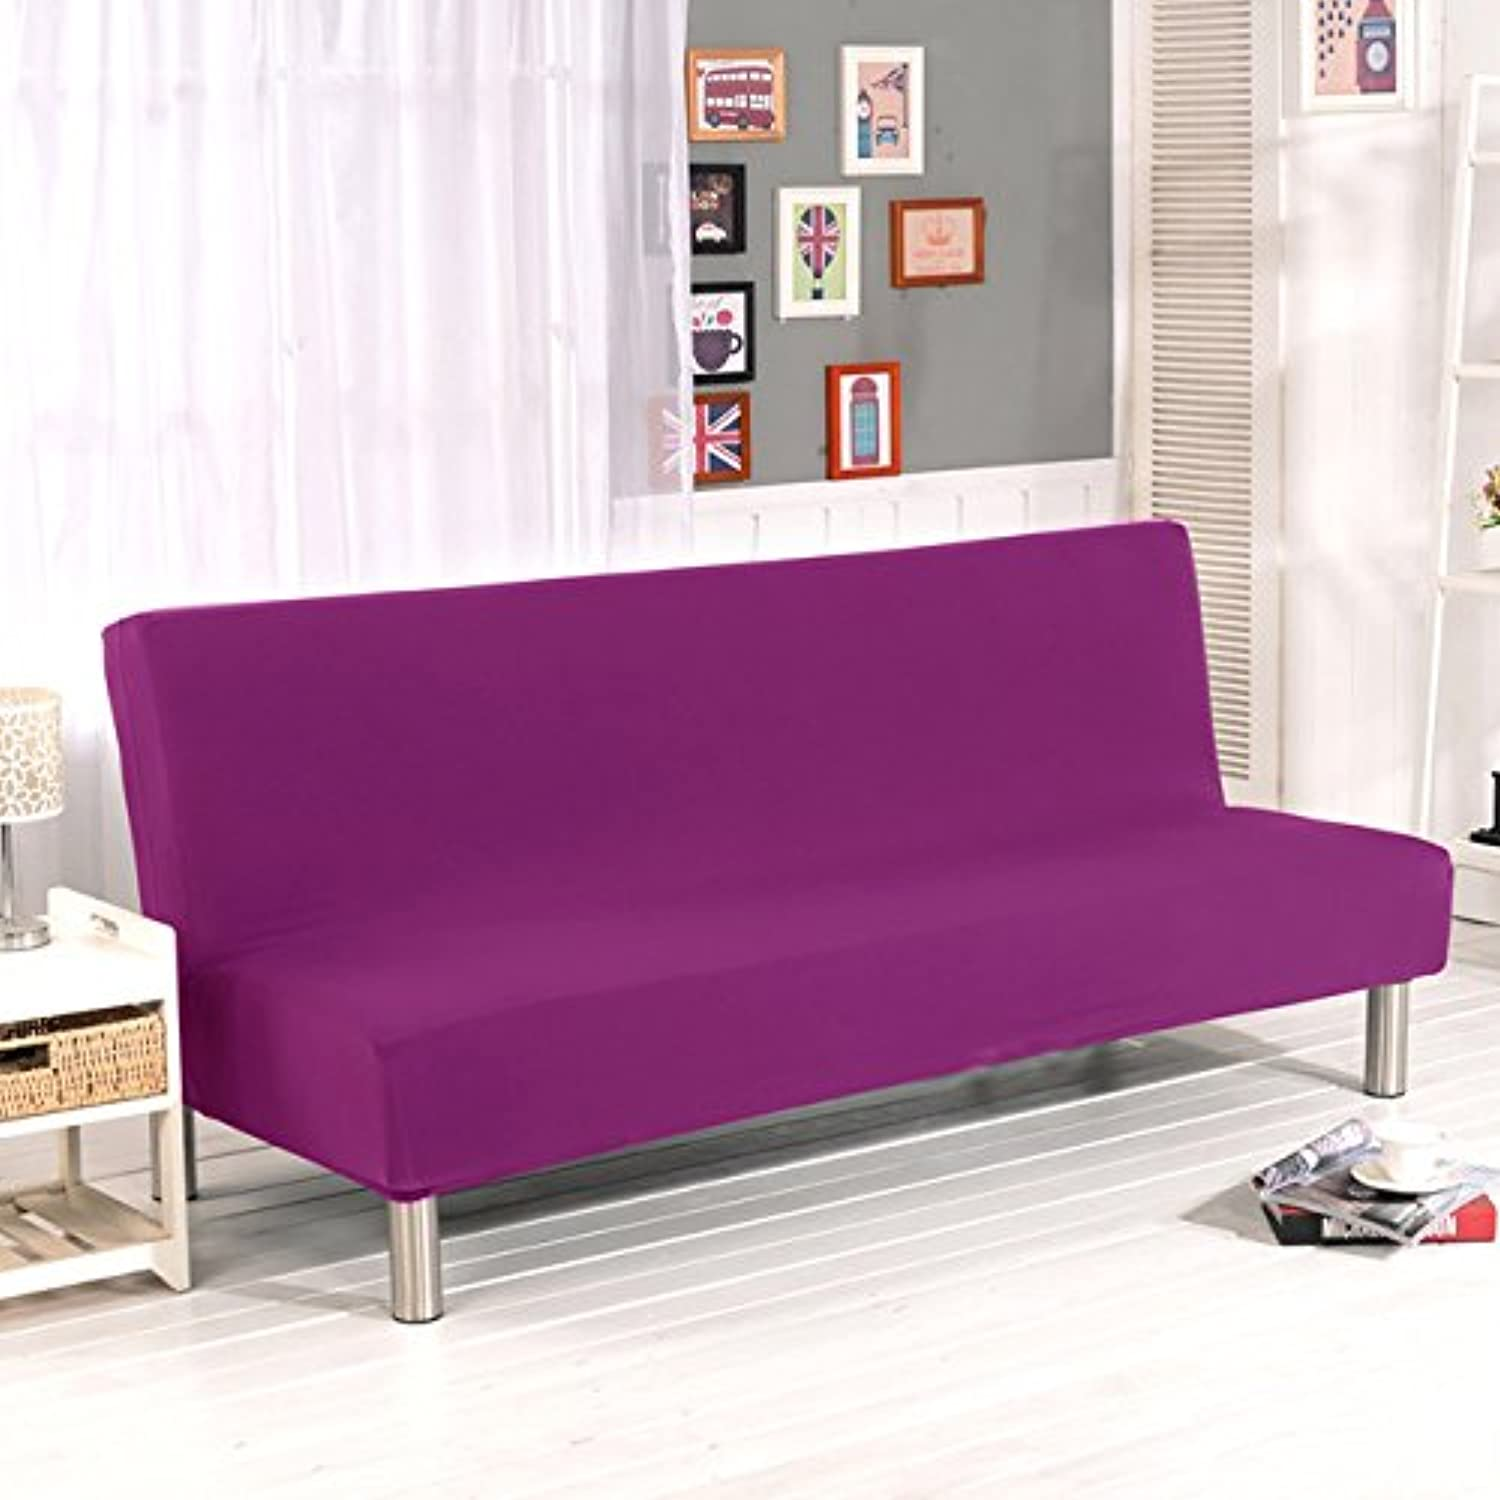 Solid color Elastic Sofa Cover No armrest Removable Stretch Slipcovers for Couch All-Inclusive Folding Sofa Bed Cover 180-210cm   02, S(Small Size)